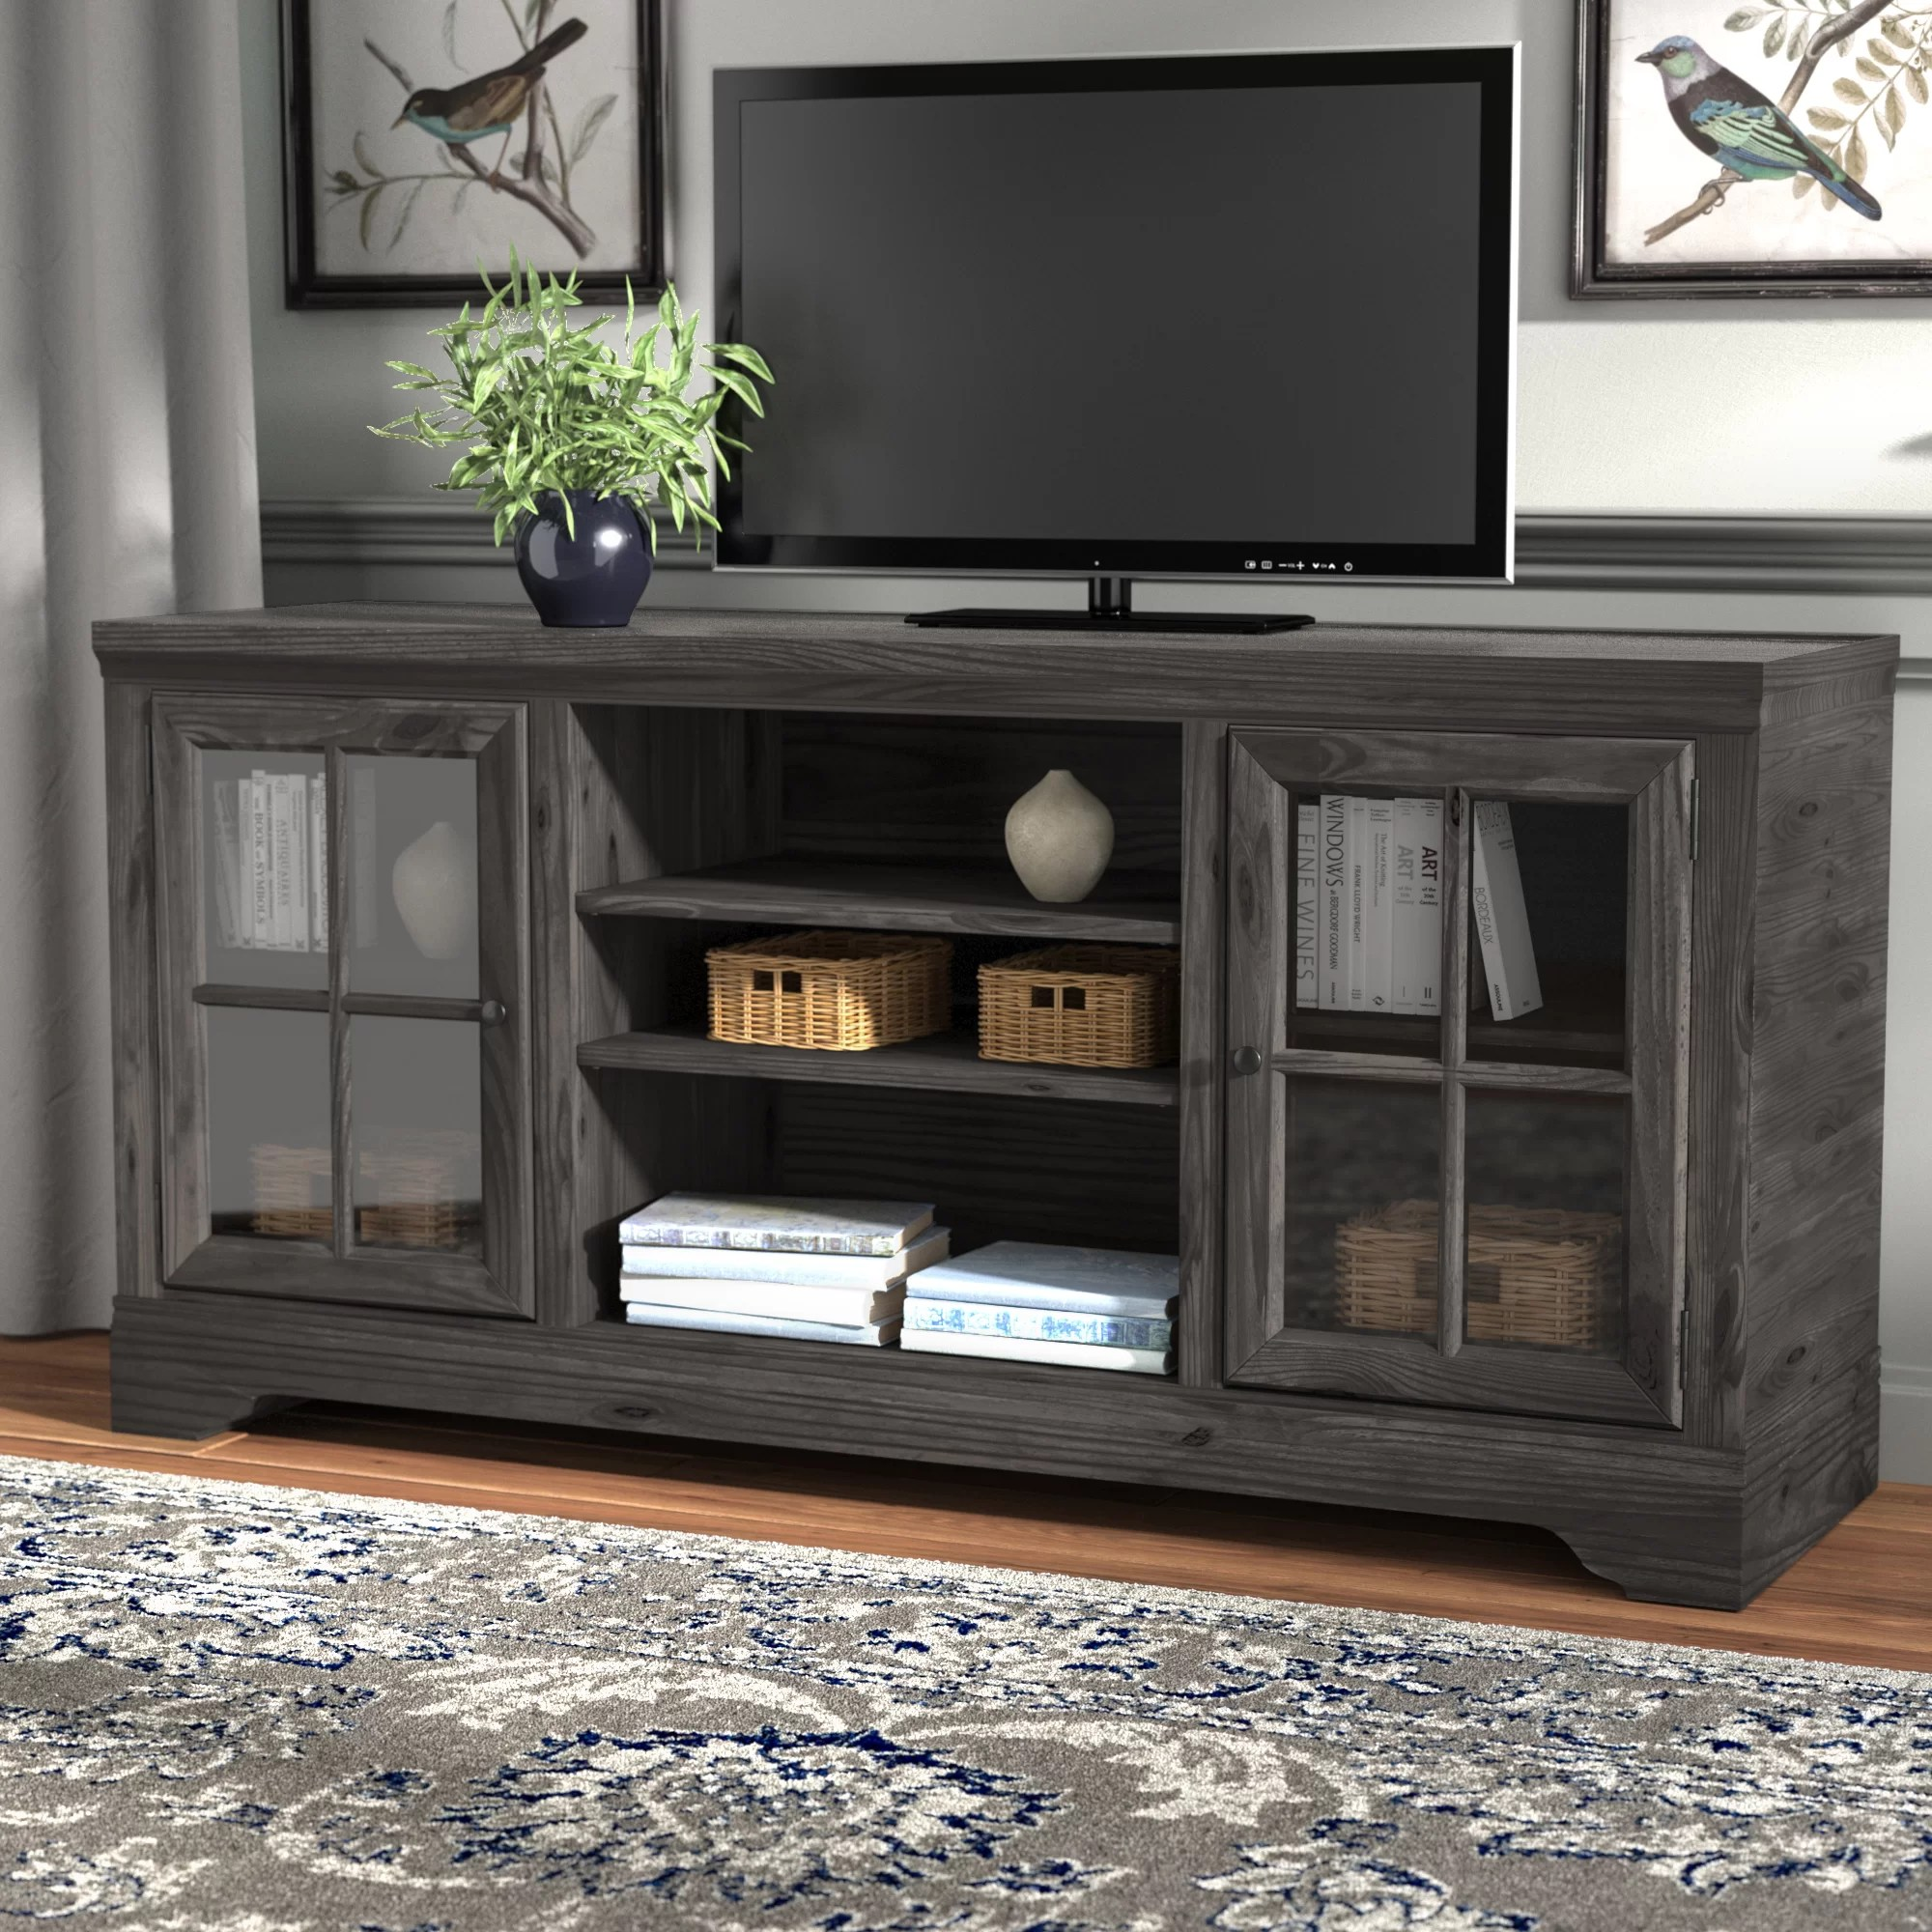 Meubles Zurich Zurich Tv Stand For Tvs Up To 65